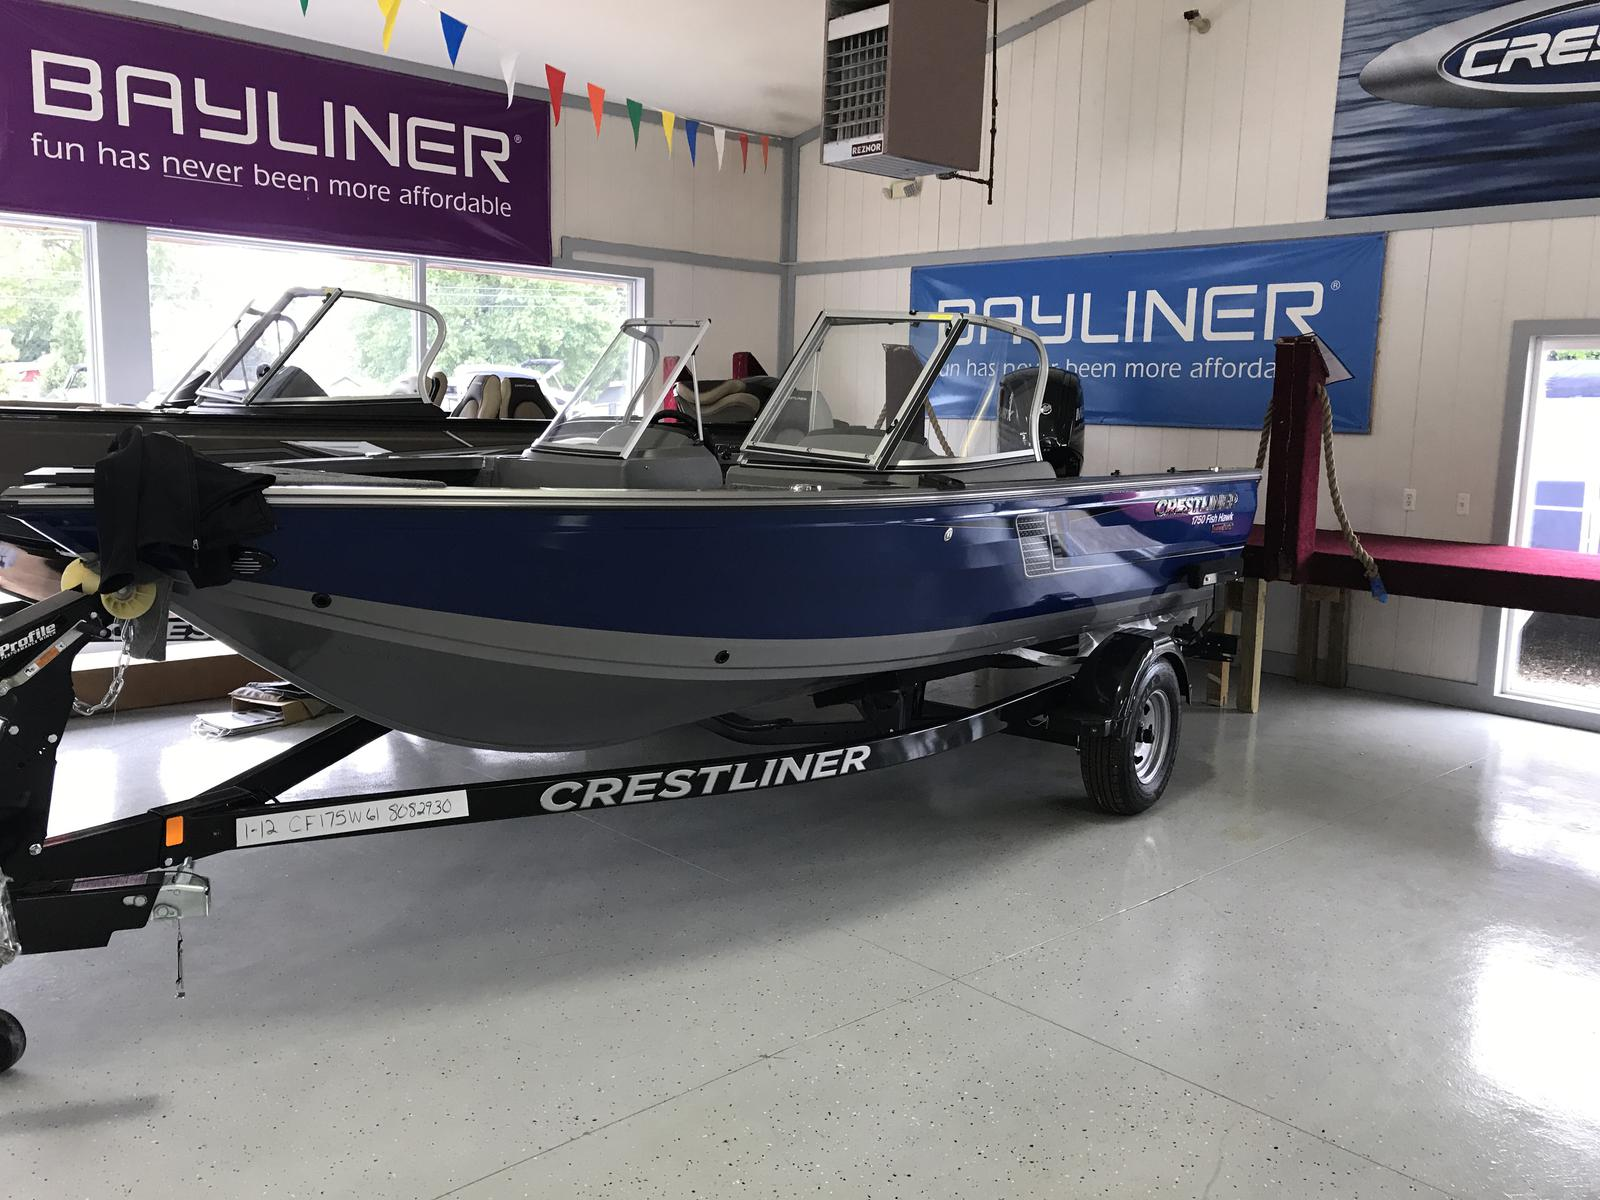 Crestliner 1750 Fish Hawk Walk-through